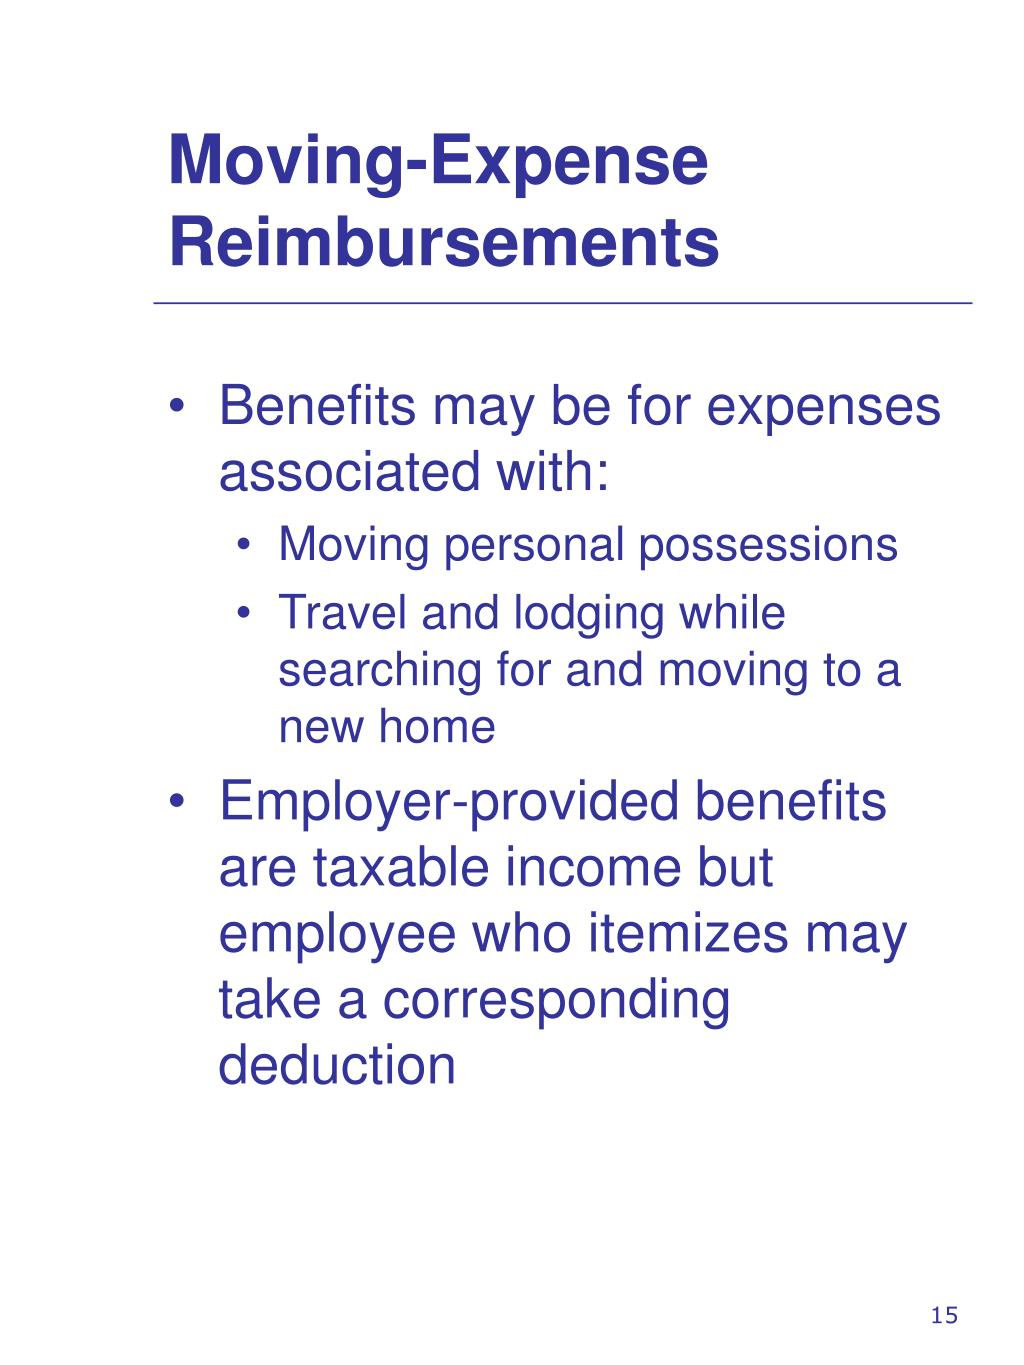 Moving-Expense Reimbursements